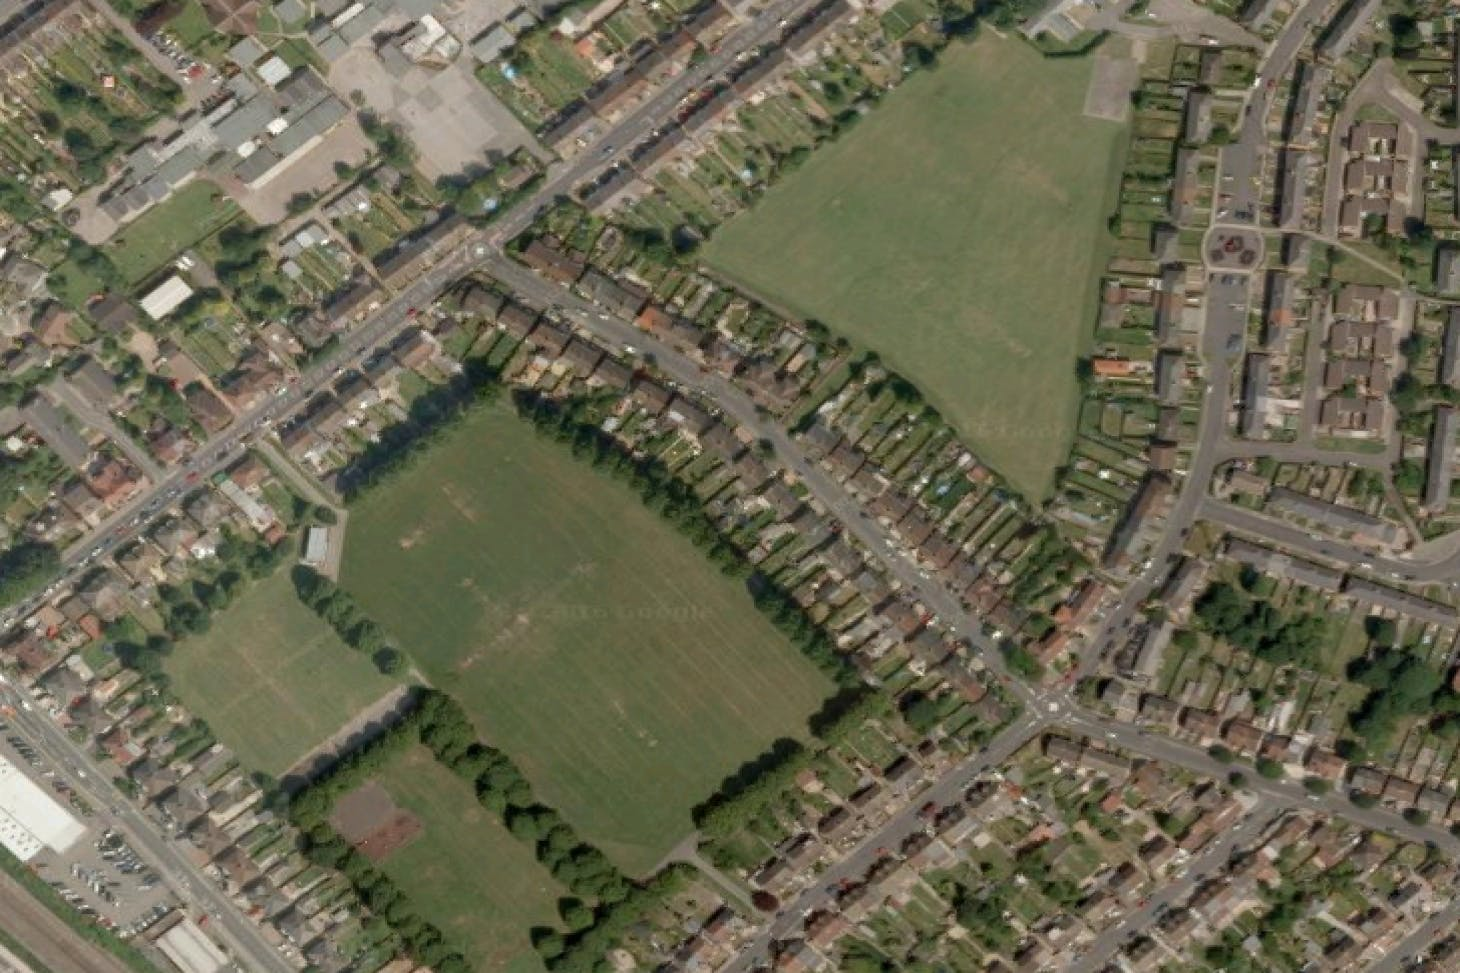 Alder Crescent Recreation Ground 11 a side | Grass football pitch